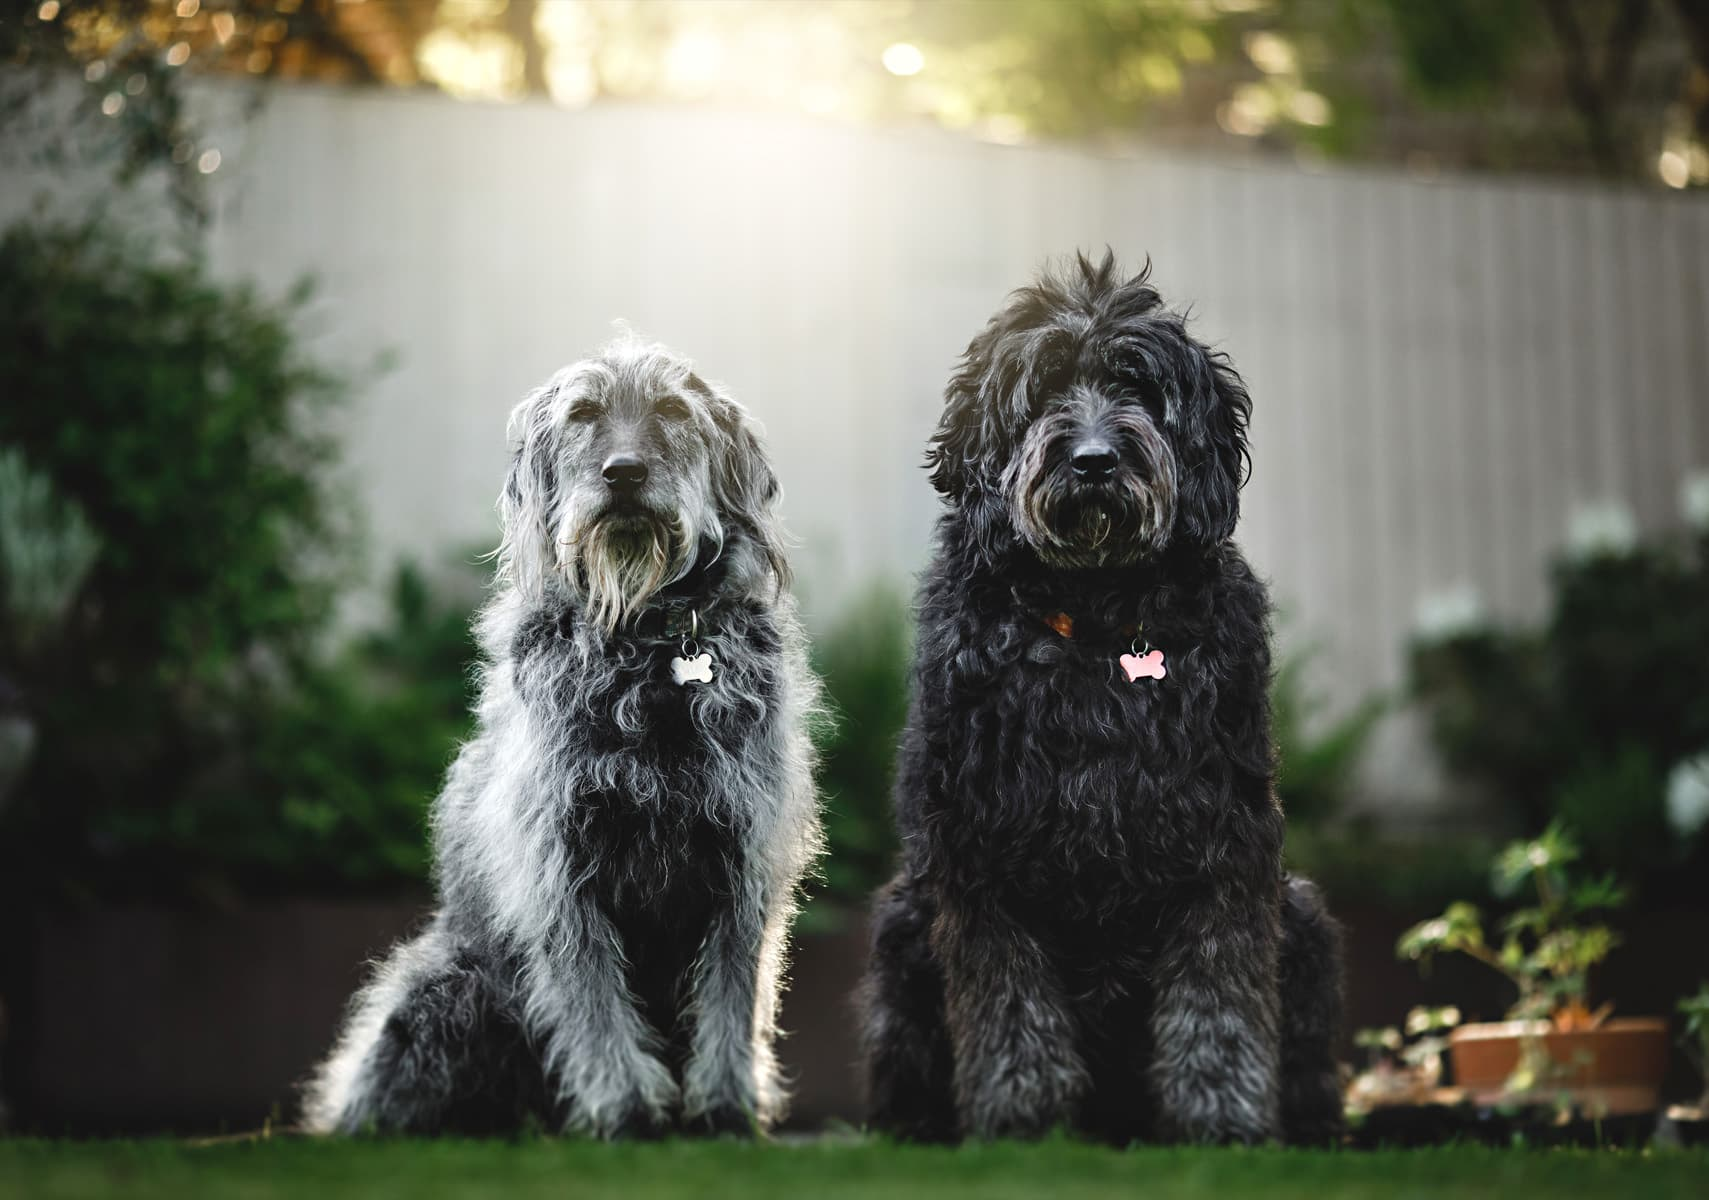 photos of two fluffy dogs ready to attend a wedding